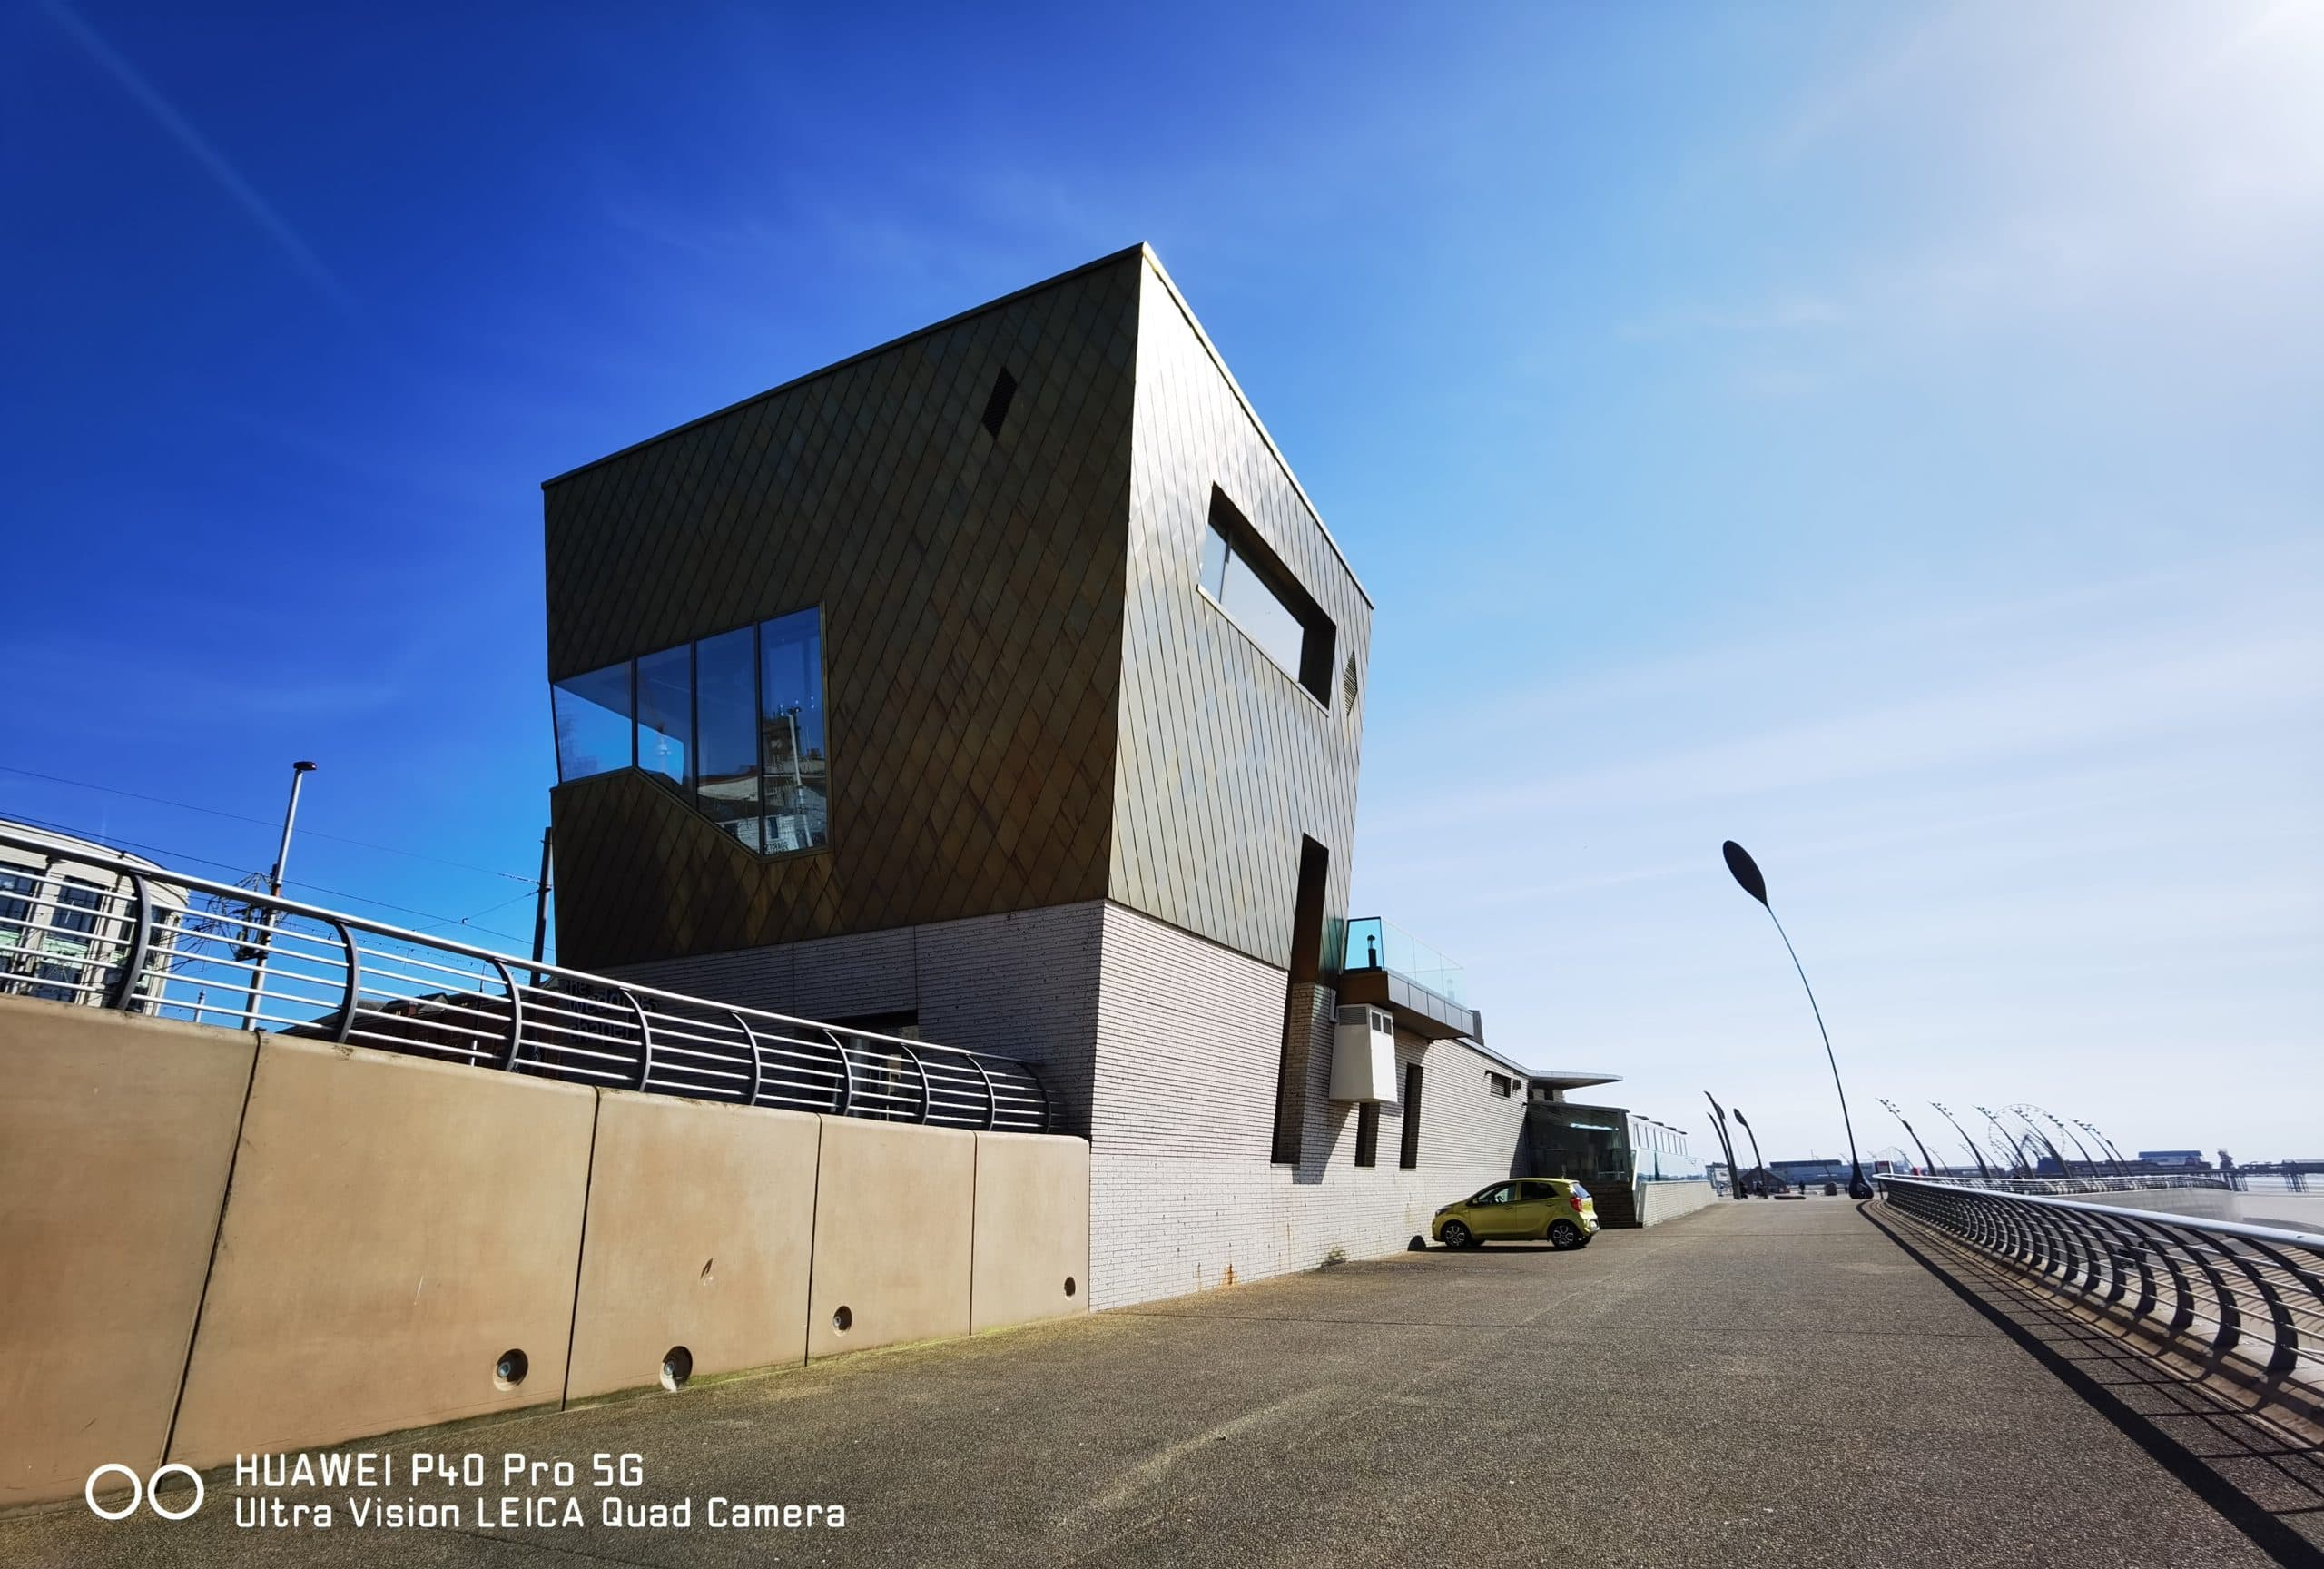 Huawei P40 Pro vs P30 Pro Camera Samples Compared & Photo Gallery 43